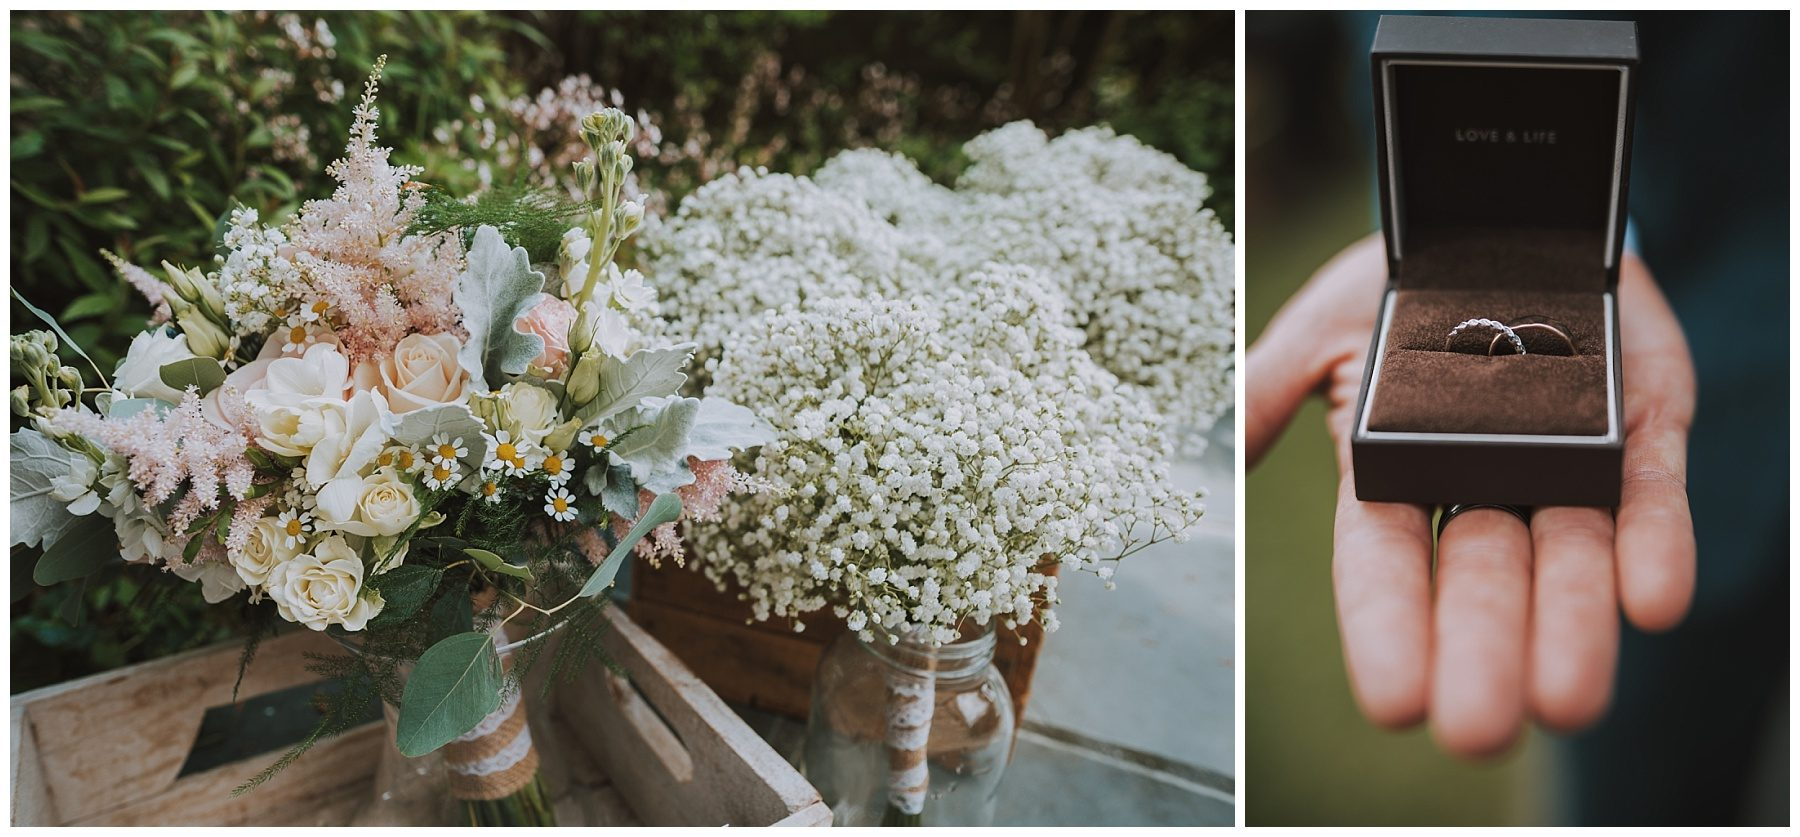 Wedding Flowers and Ring Photography